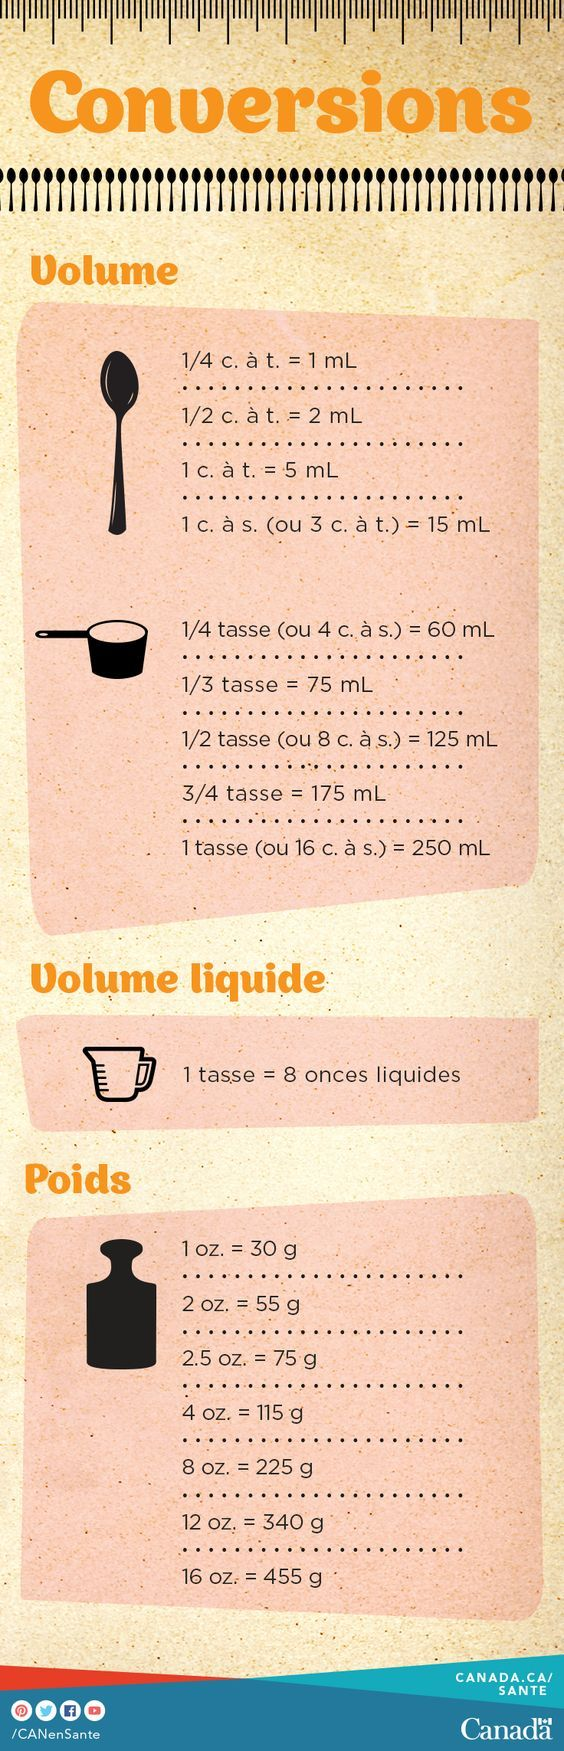 Pratiquez vos mesures de cuisine et leurs conversions (grammes en onces, millilitres en tasses) avec nos http://canadiensensante.gc.ca/eating-nutrition/healthy-eating-saine-alimentation/tips-conseils/recipes-recettes/index-fra.php pour une saine alimentation :